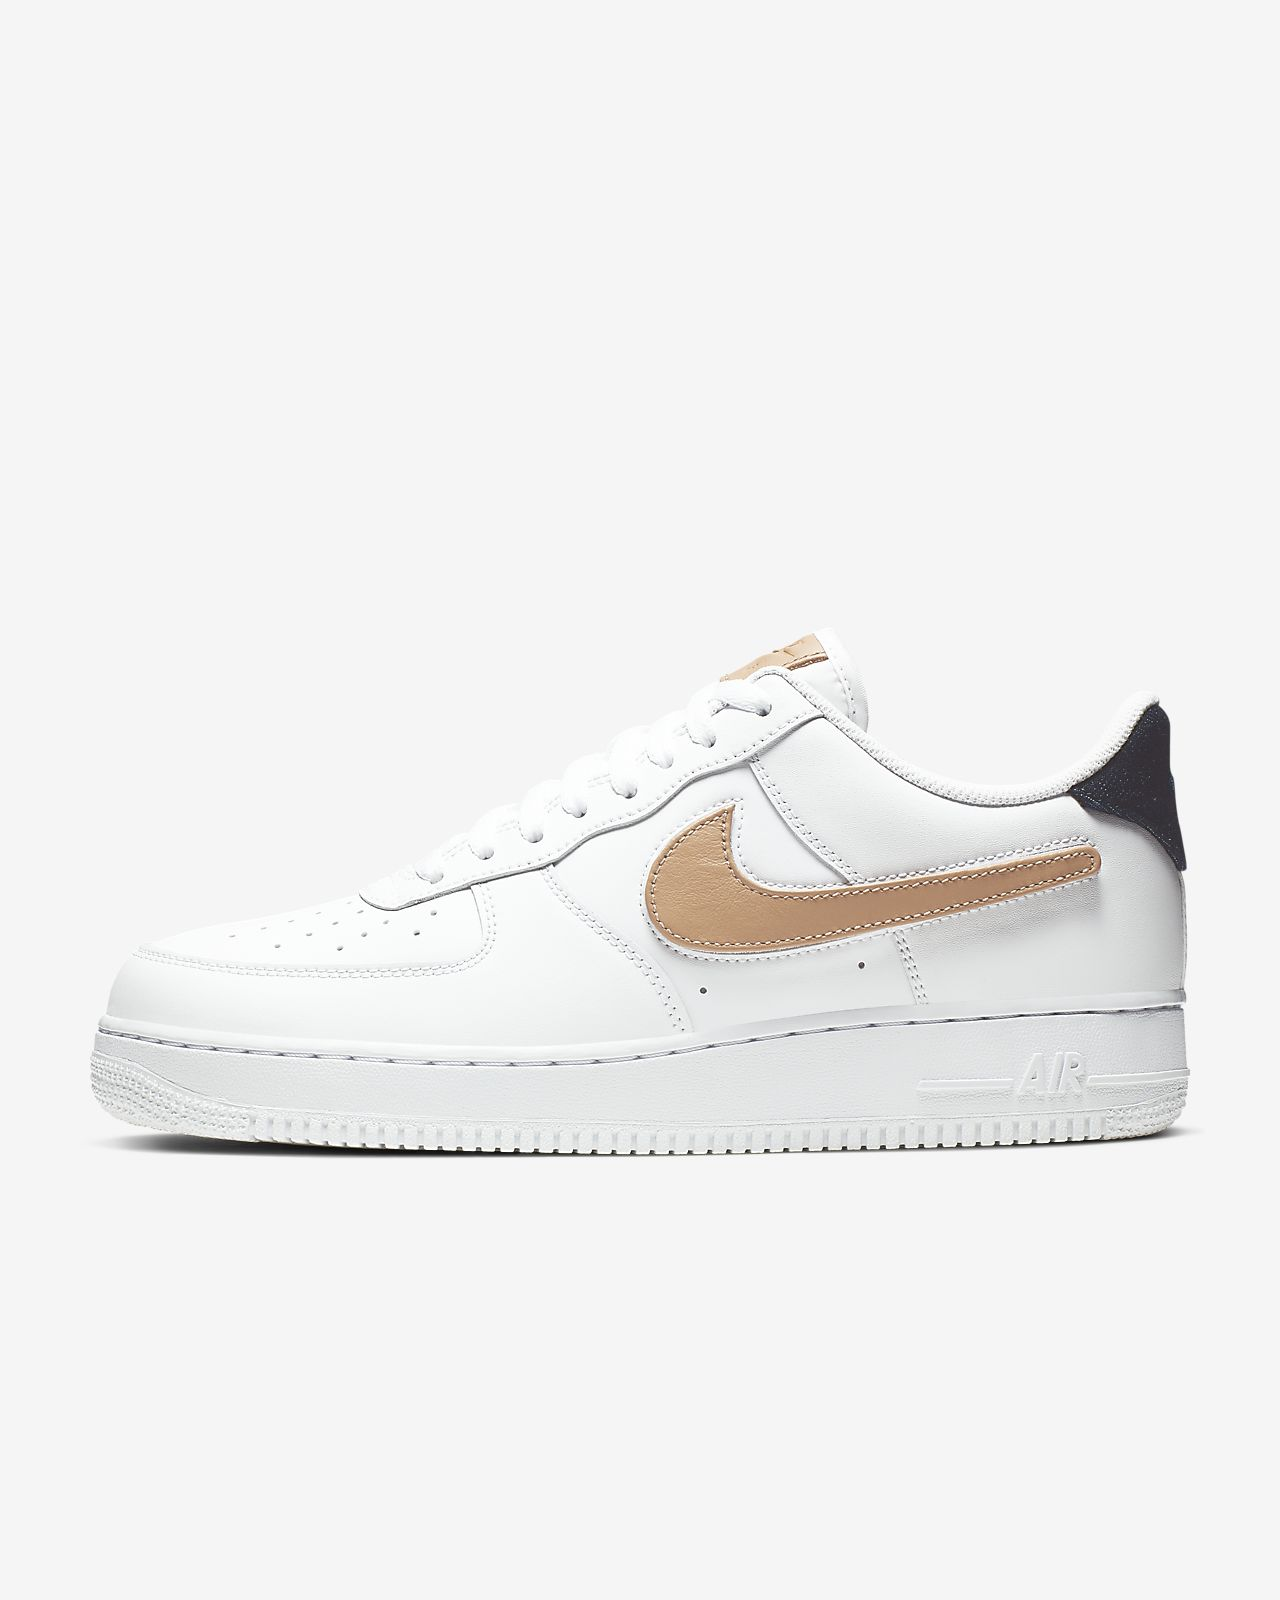 Nike Air Force 1 '07 LV8 3 Removable Swoosh Herrenschuh